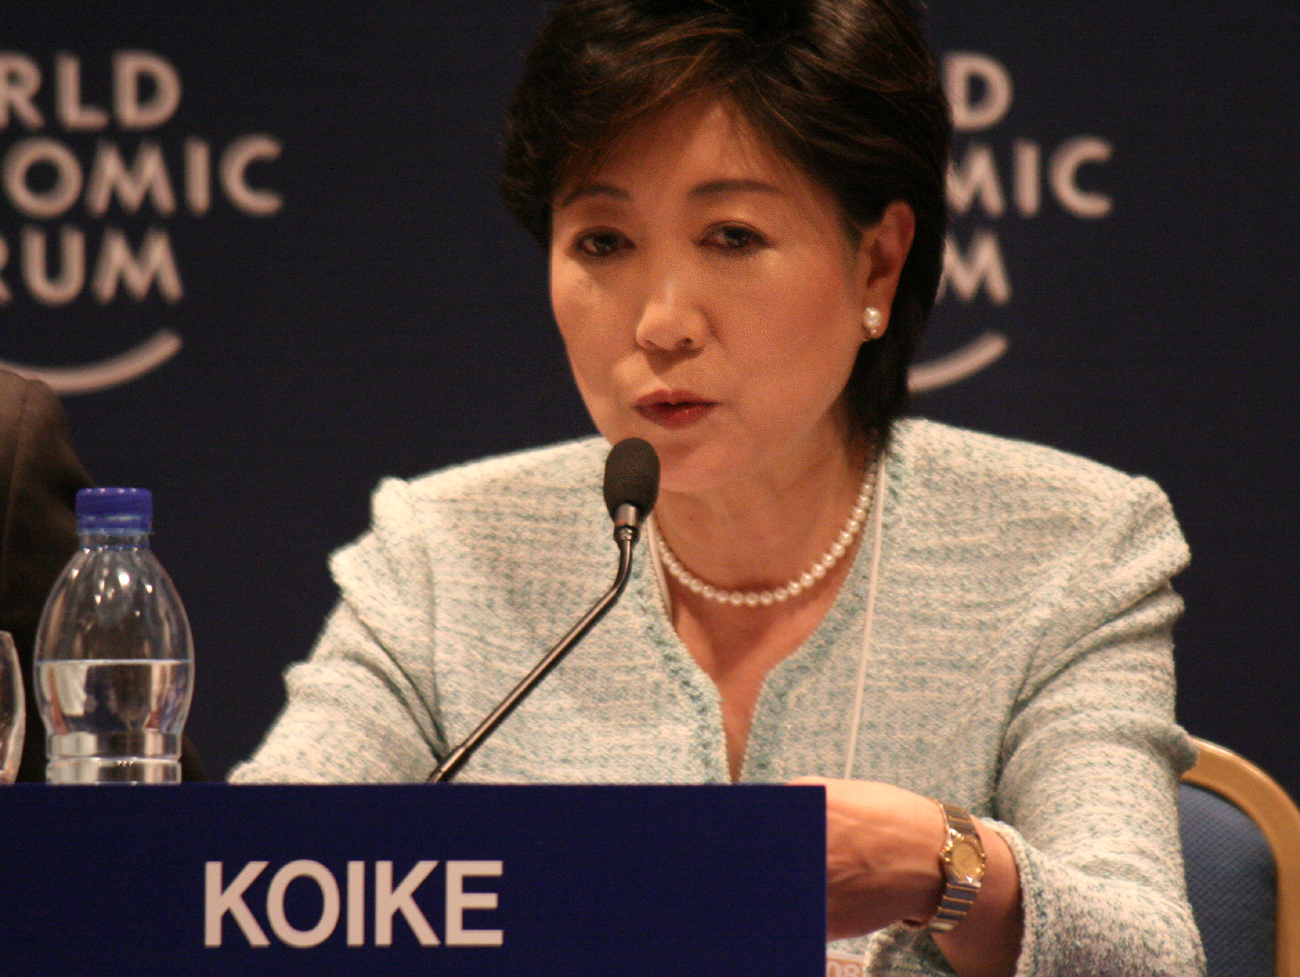 Tokyo Governor Yuriko Koike. By Copyright by World Economic Forum (www.weforum.org) - originally posted to Flickr as Yuriko Koike - World Economic Forum on the Middle East 2008, CC BY-SA 2.0, https://commons.wikimedia.org/w/index.php?curid=4482282